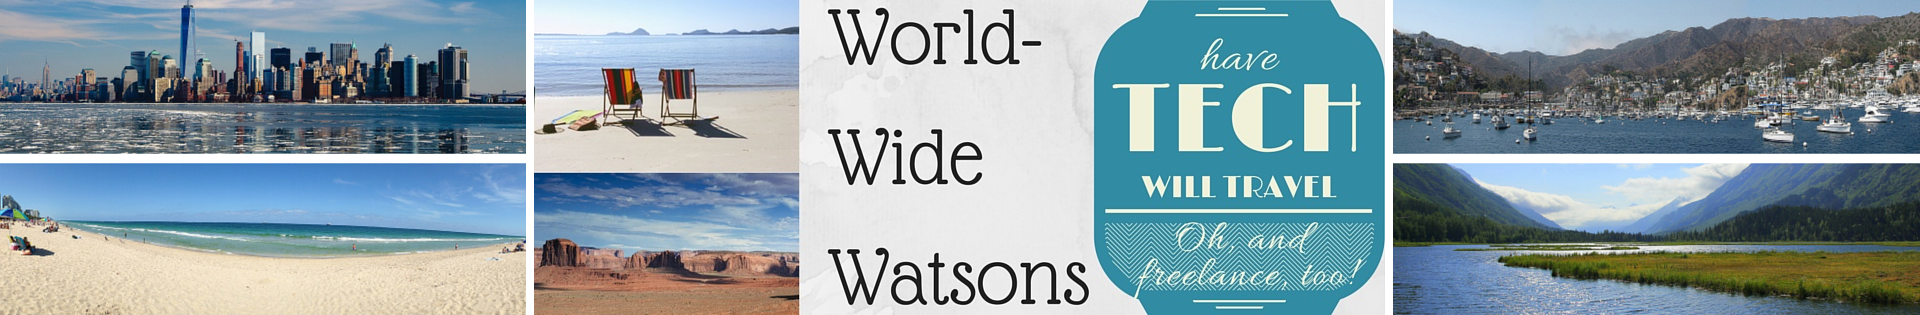 Worldwide Watsons